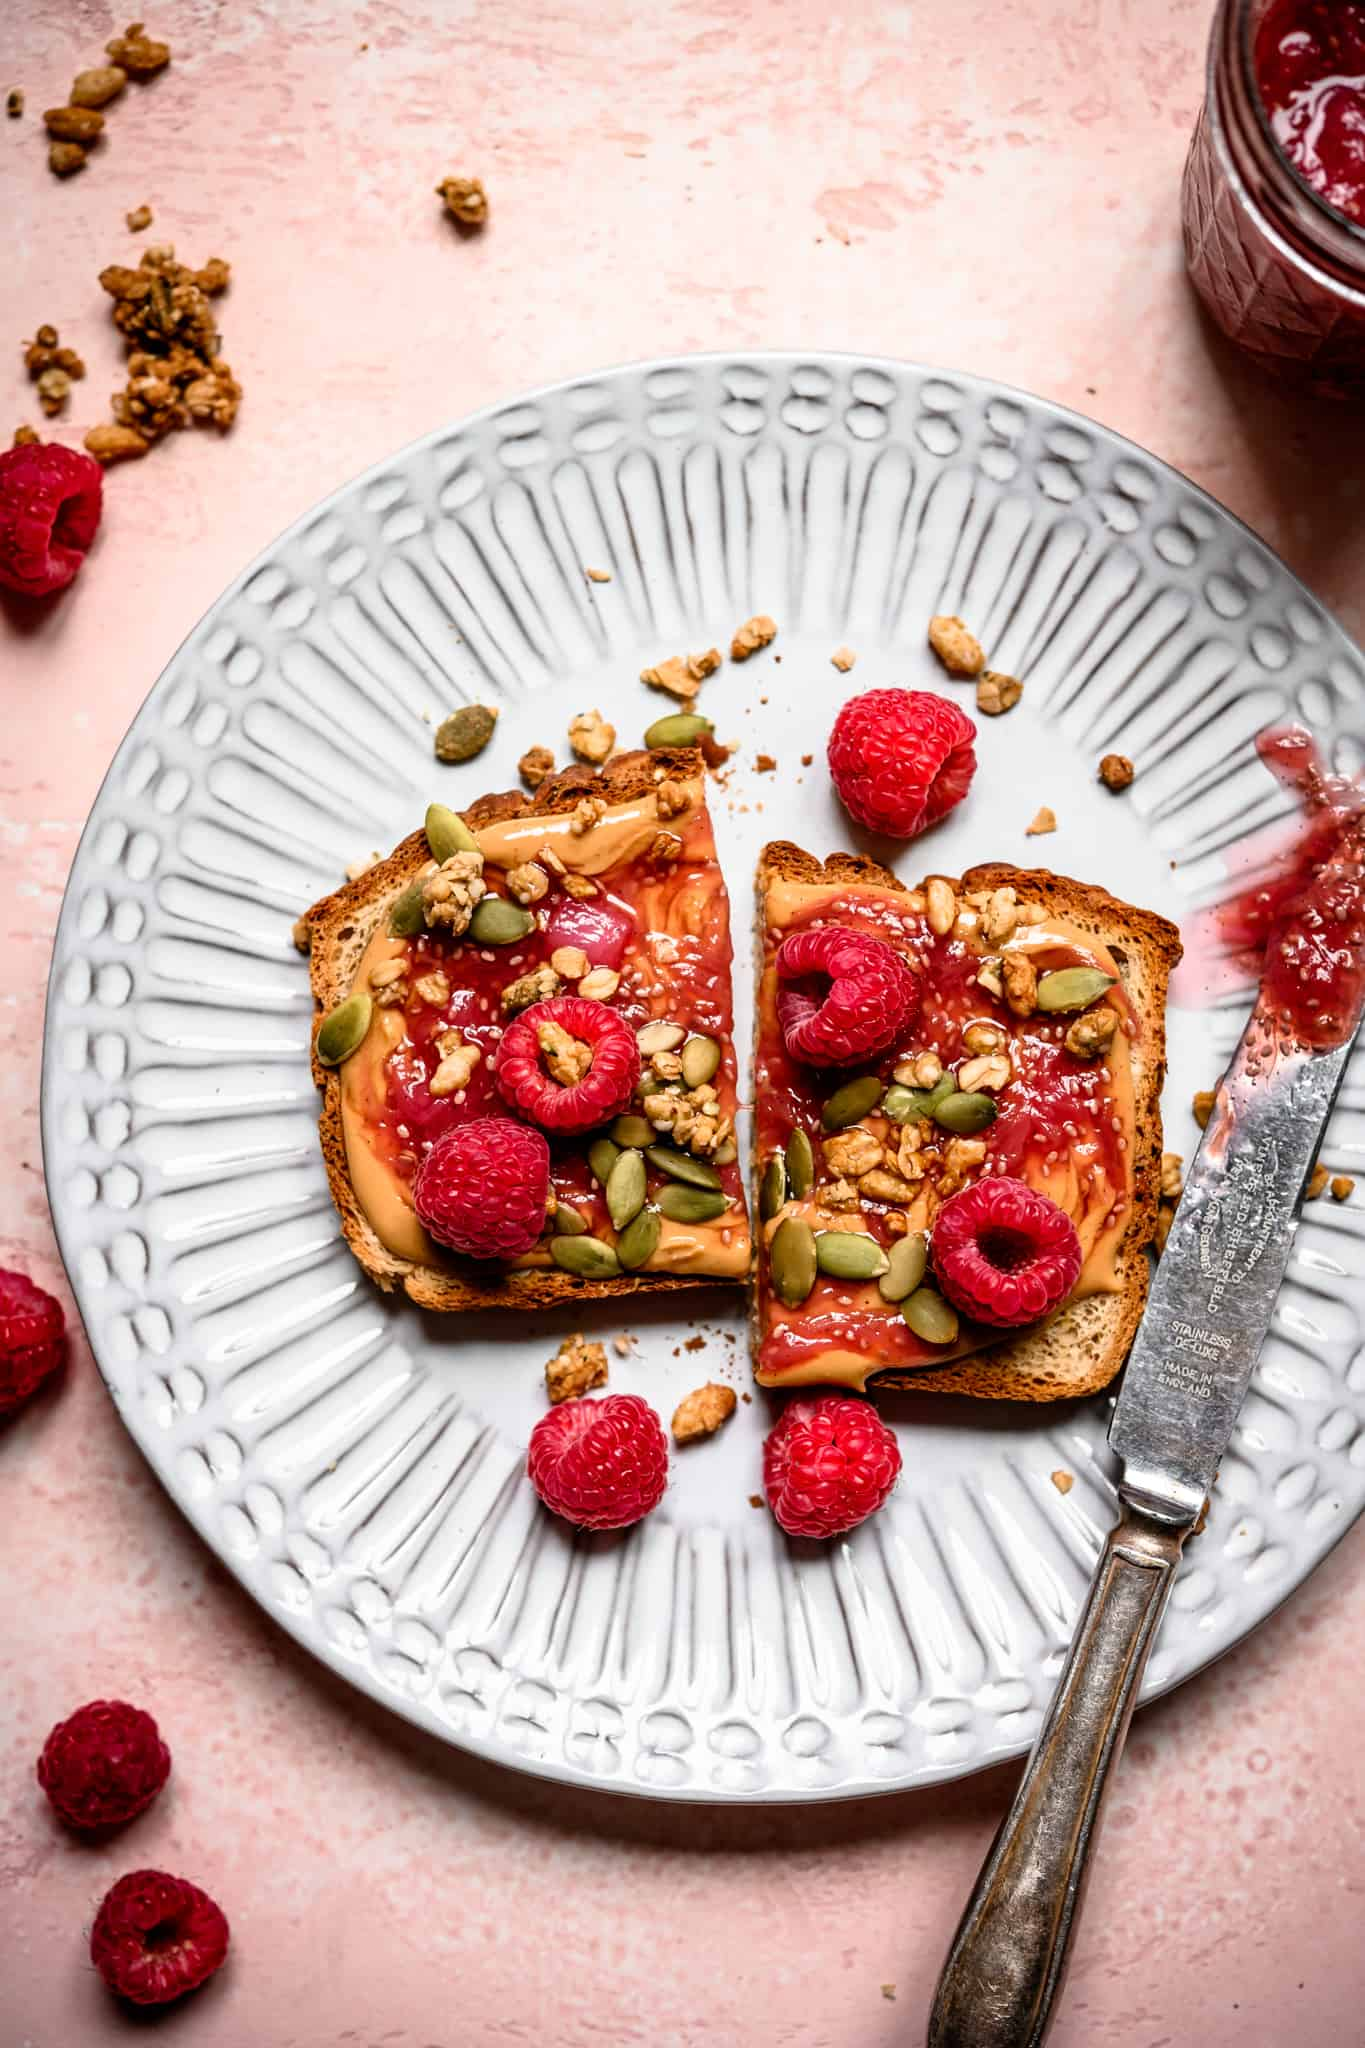 Overhead view of peanut butter and rhubarb compote toast on a white plate with fresh raspberries